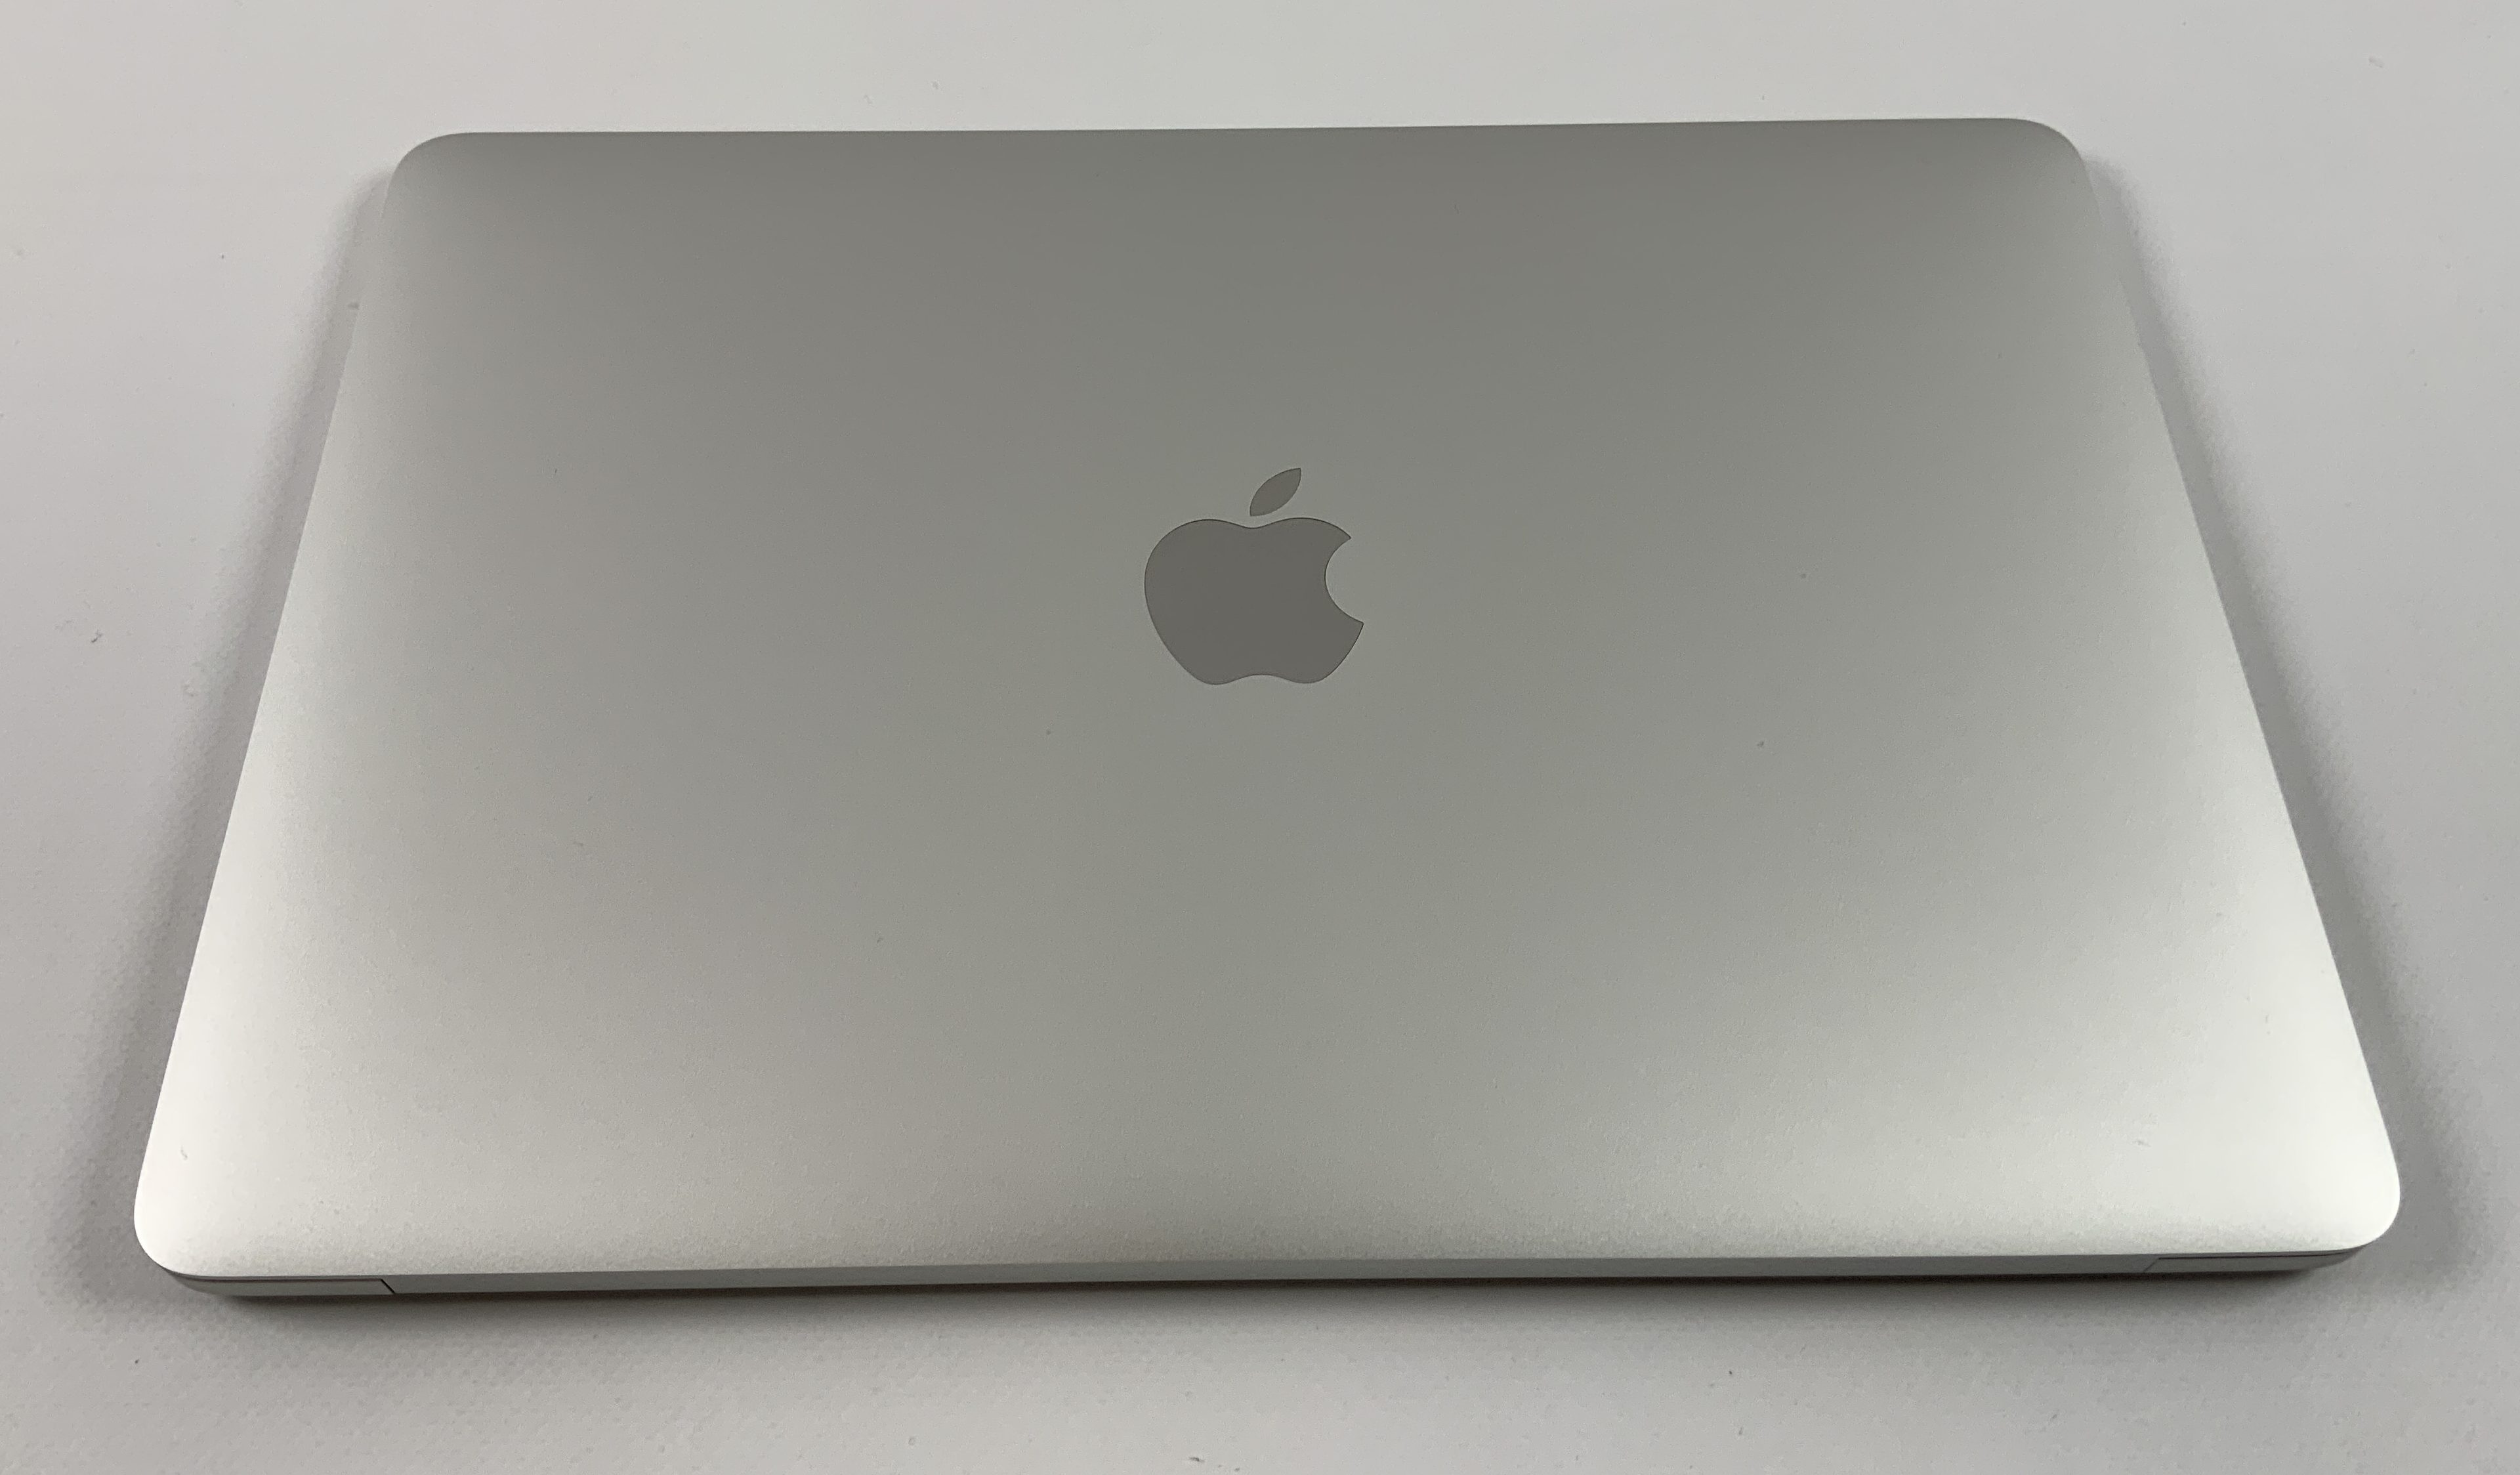 "MacBook 12"" Mid 2017 (Intel Core m3 1.2 GHz 8 GB RAM 256 GB SSD), Silver, Intel Core m3 1.2 GHz, 8 GB RAM, 256 GB SSD, Kuva 2"